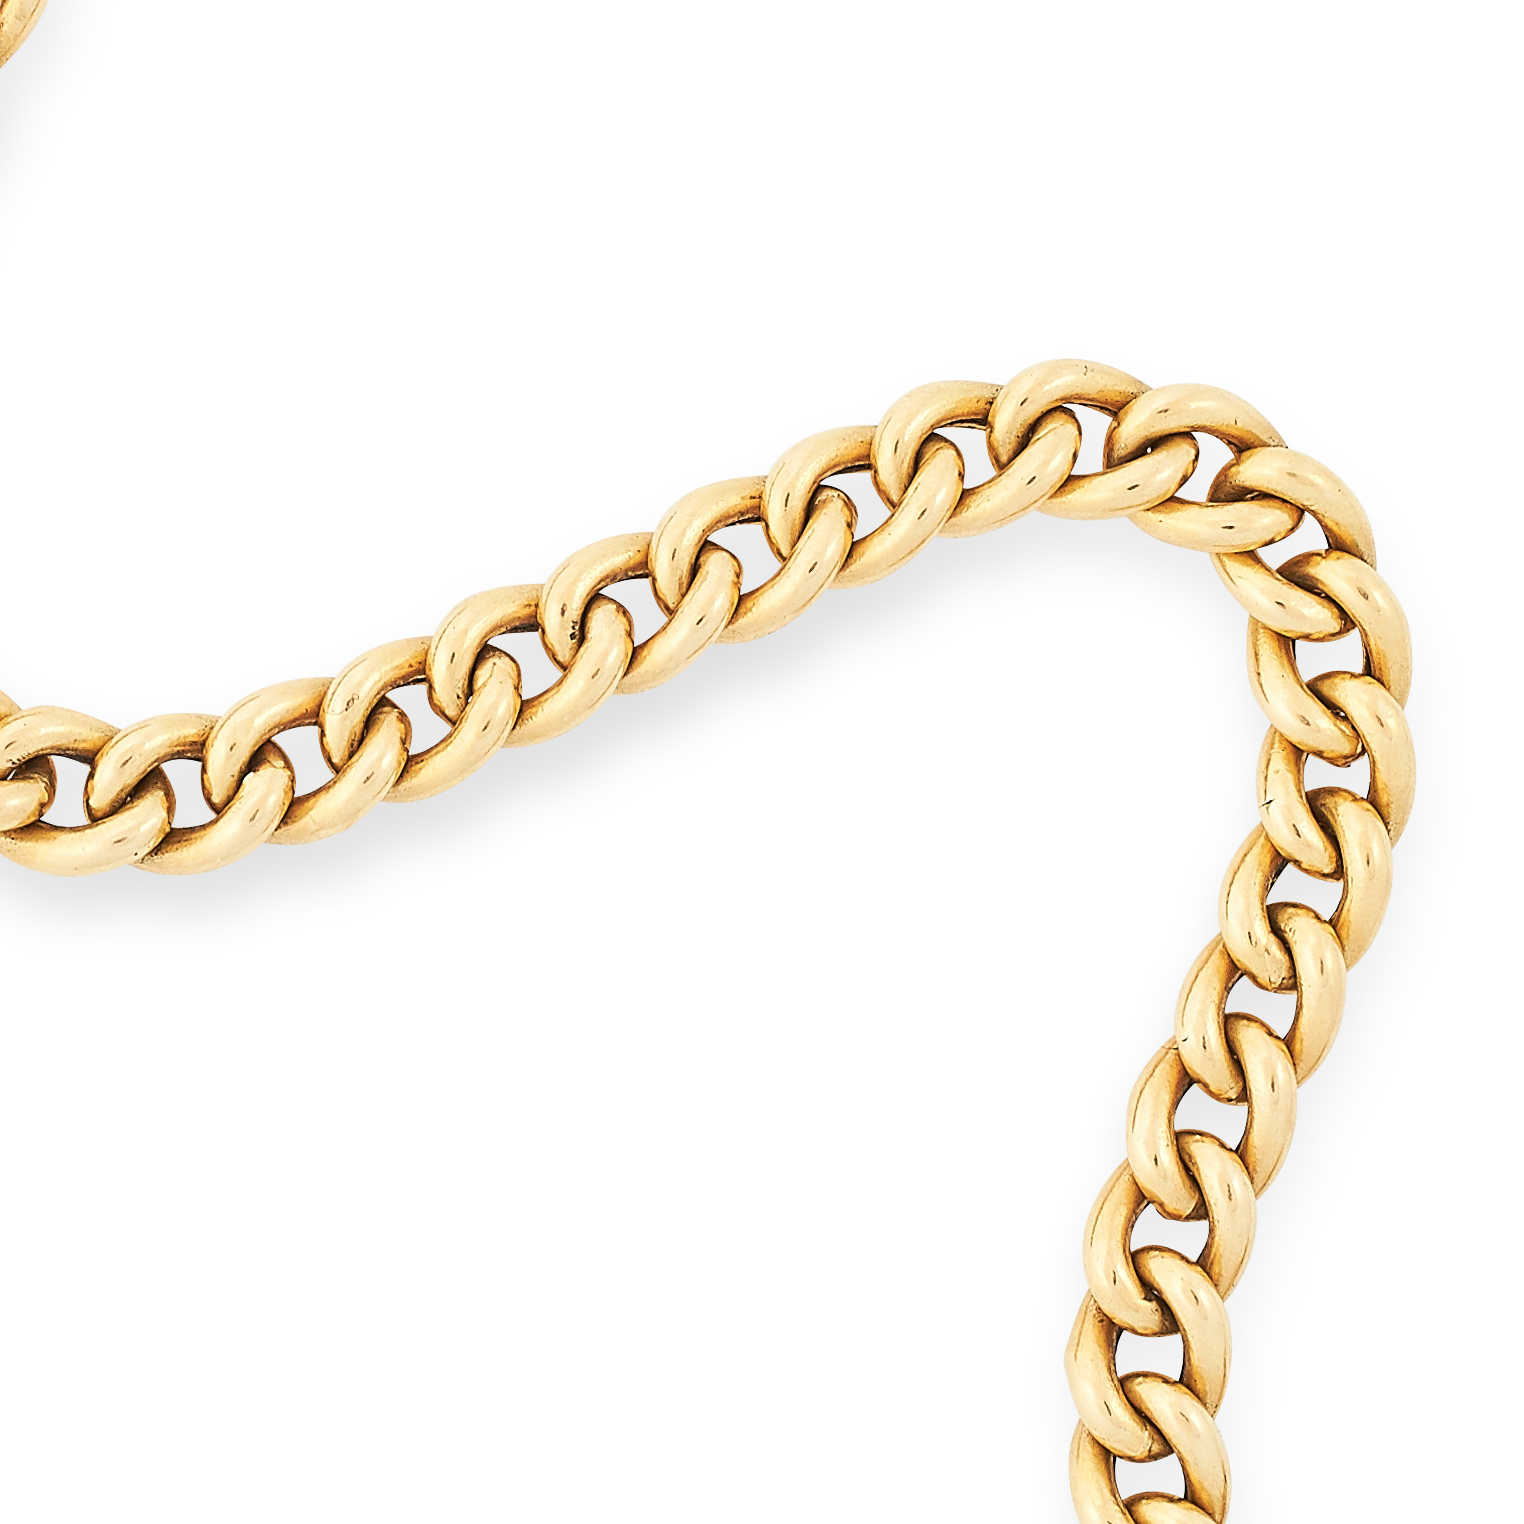 FANCY LINK BRACELET comprising of a row of textured curb links, 20cm, 16.8g. - Image 2 of 2